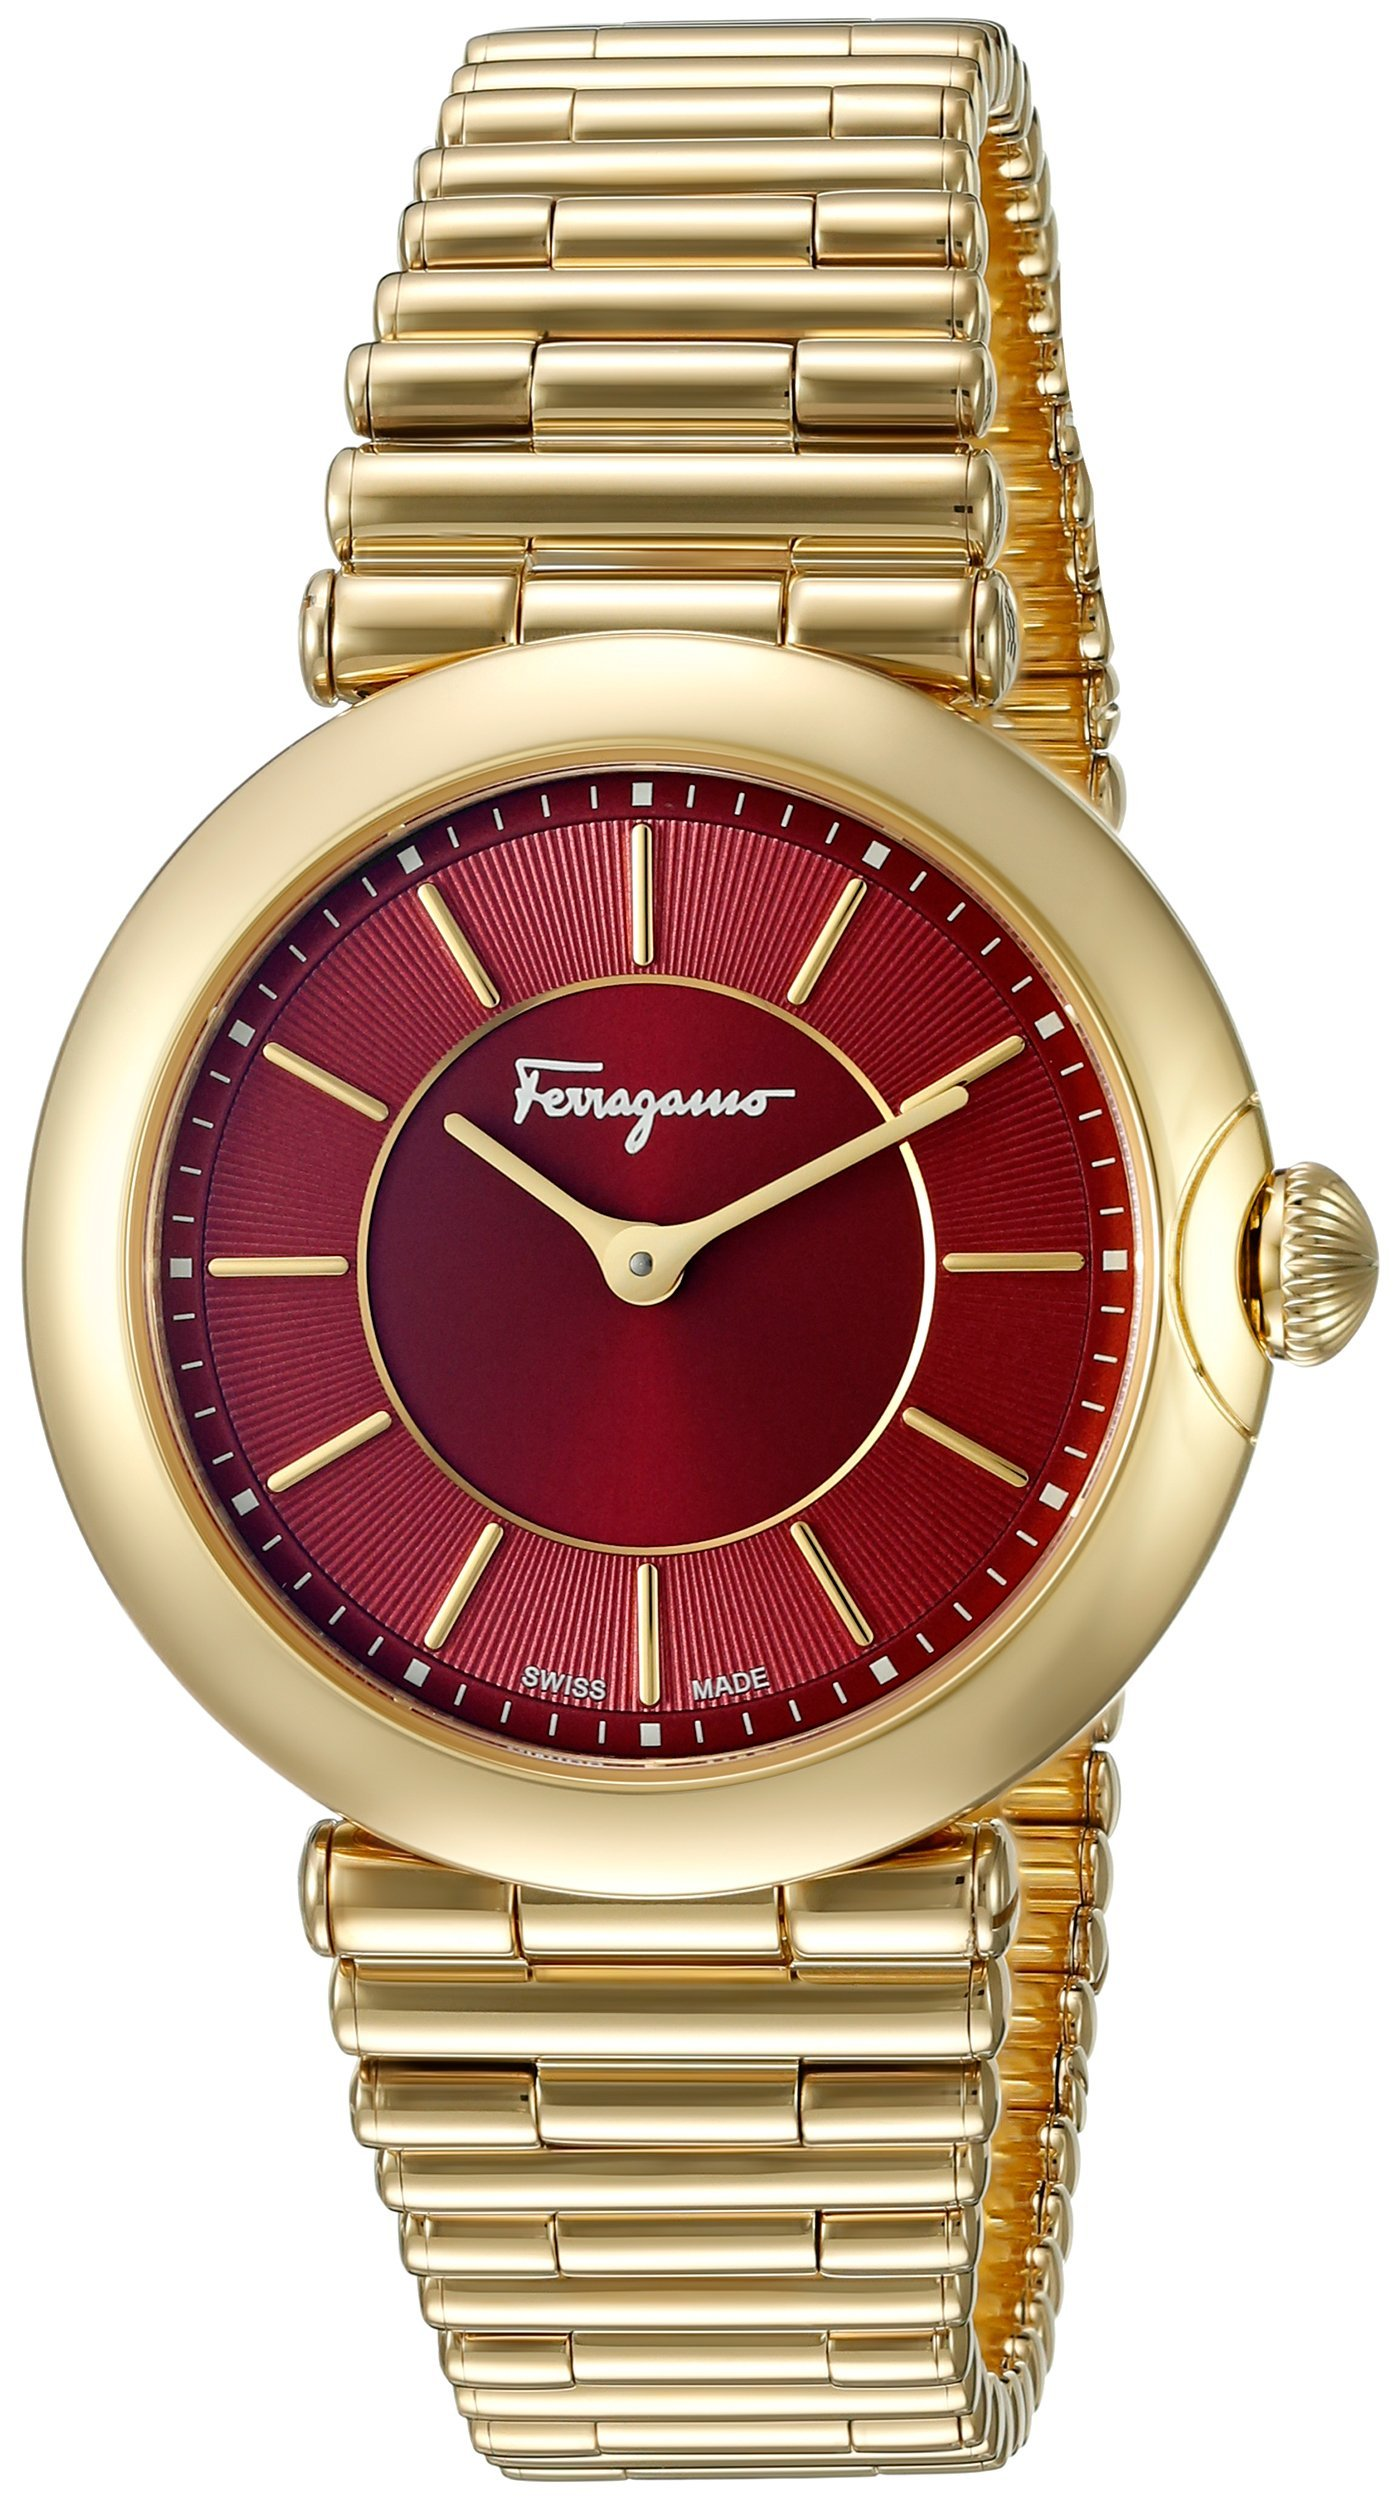 Salvatore Ferragamo Women's FIN060015 Style Analog Display Quartz Gold Watch by Salvatore Ferragamo